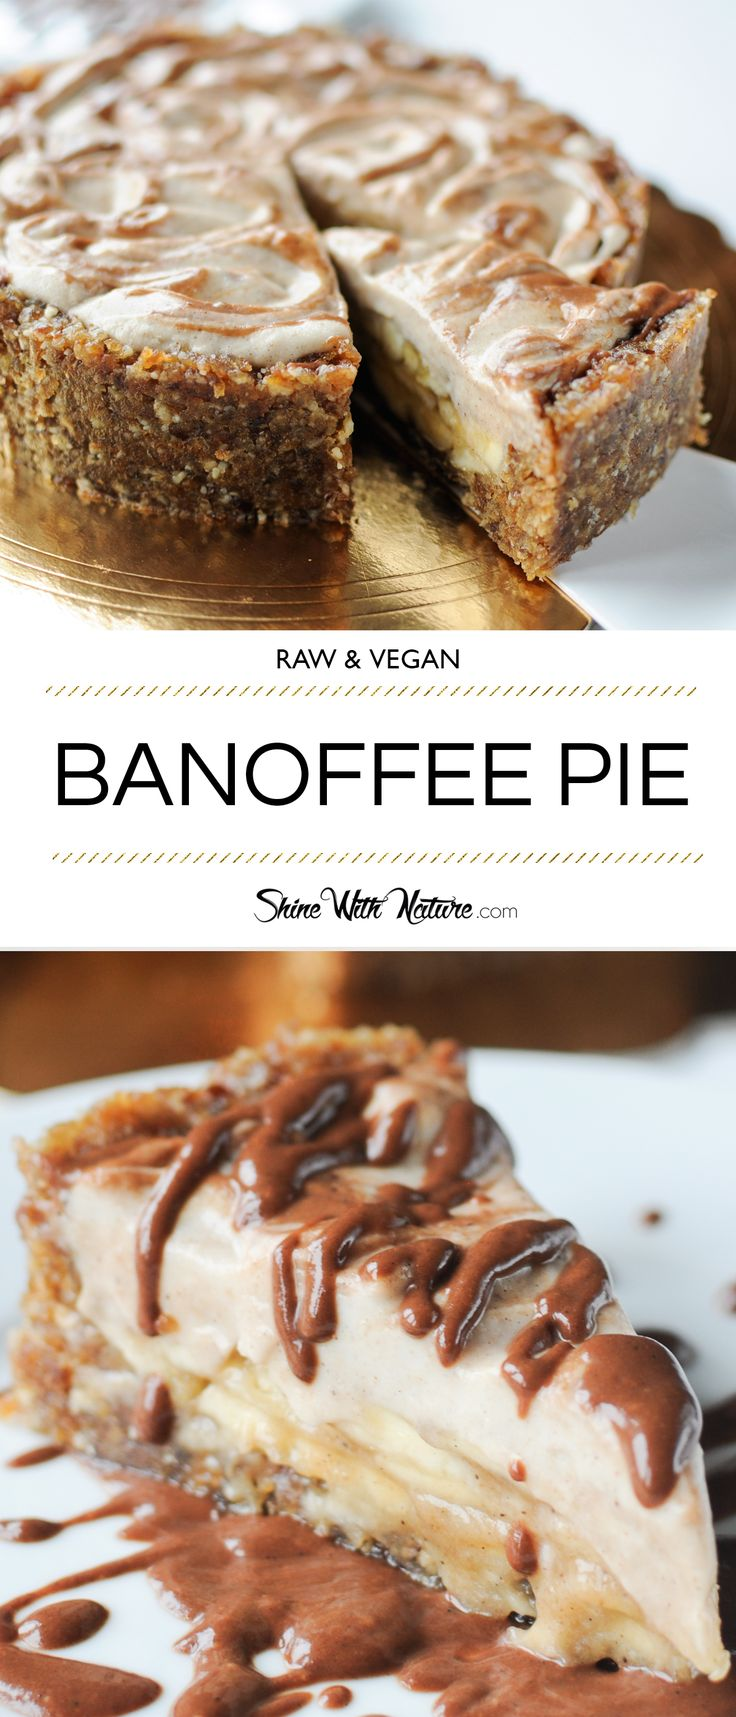 Raw vegan Banoffee Pie. This is pure heaven!!! Learn how to make it in my free workshop!